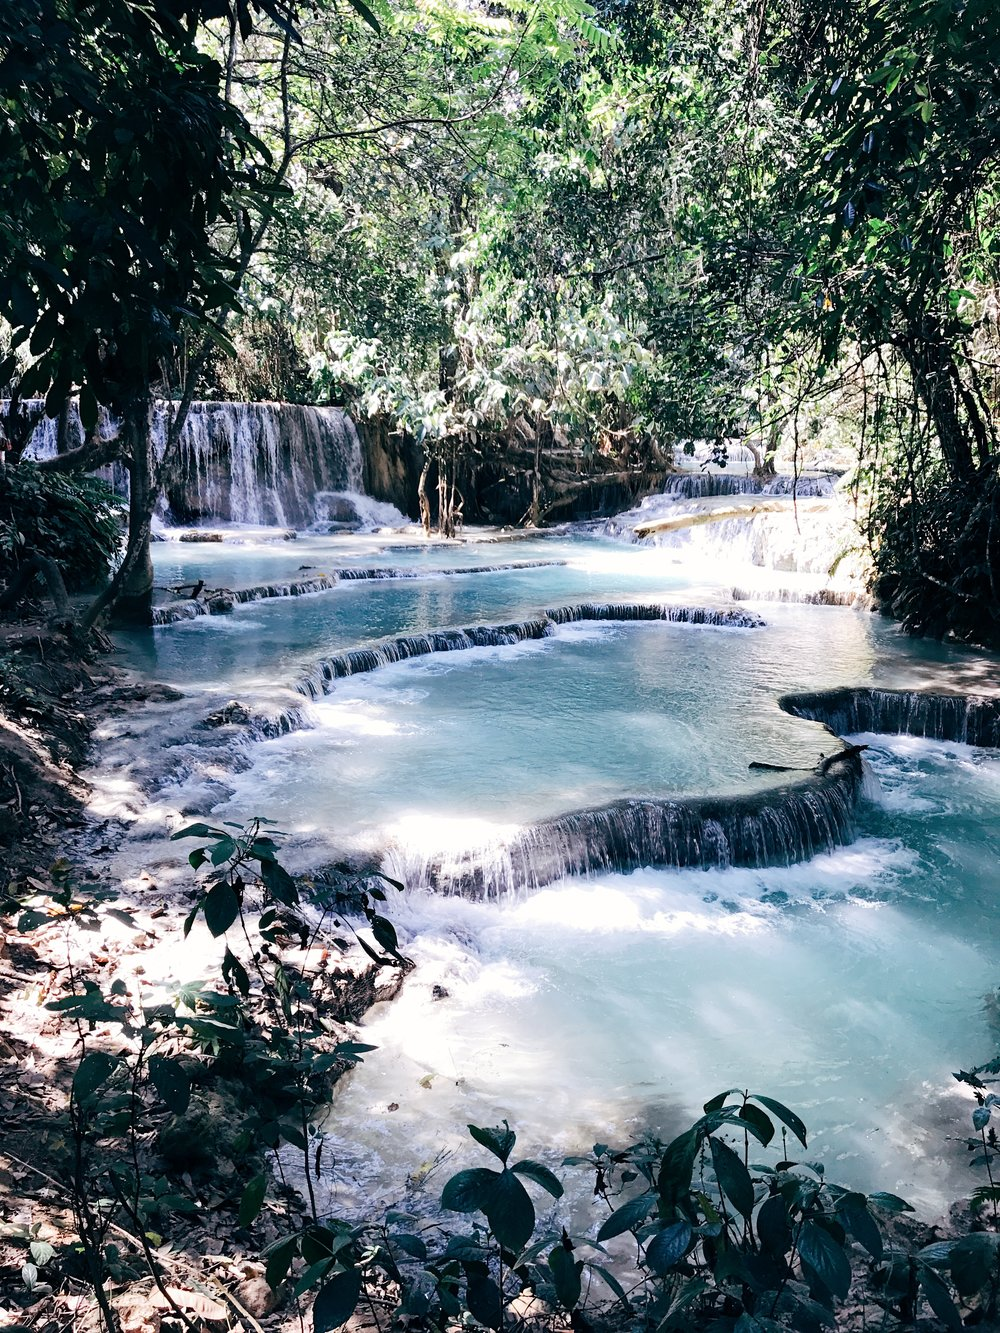 Image: Where to Travel in 2018 - Luang Prabang - Kuang Si Falls - Laos